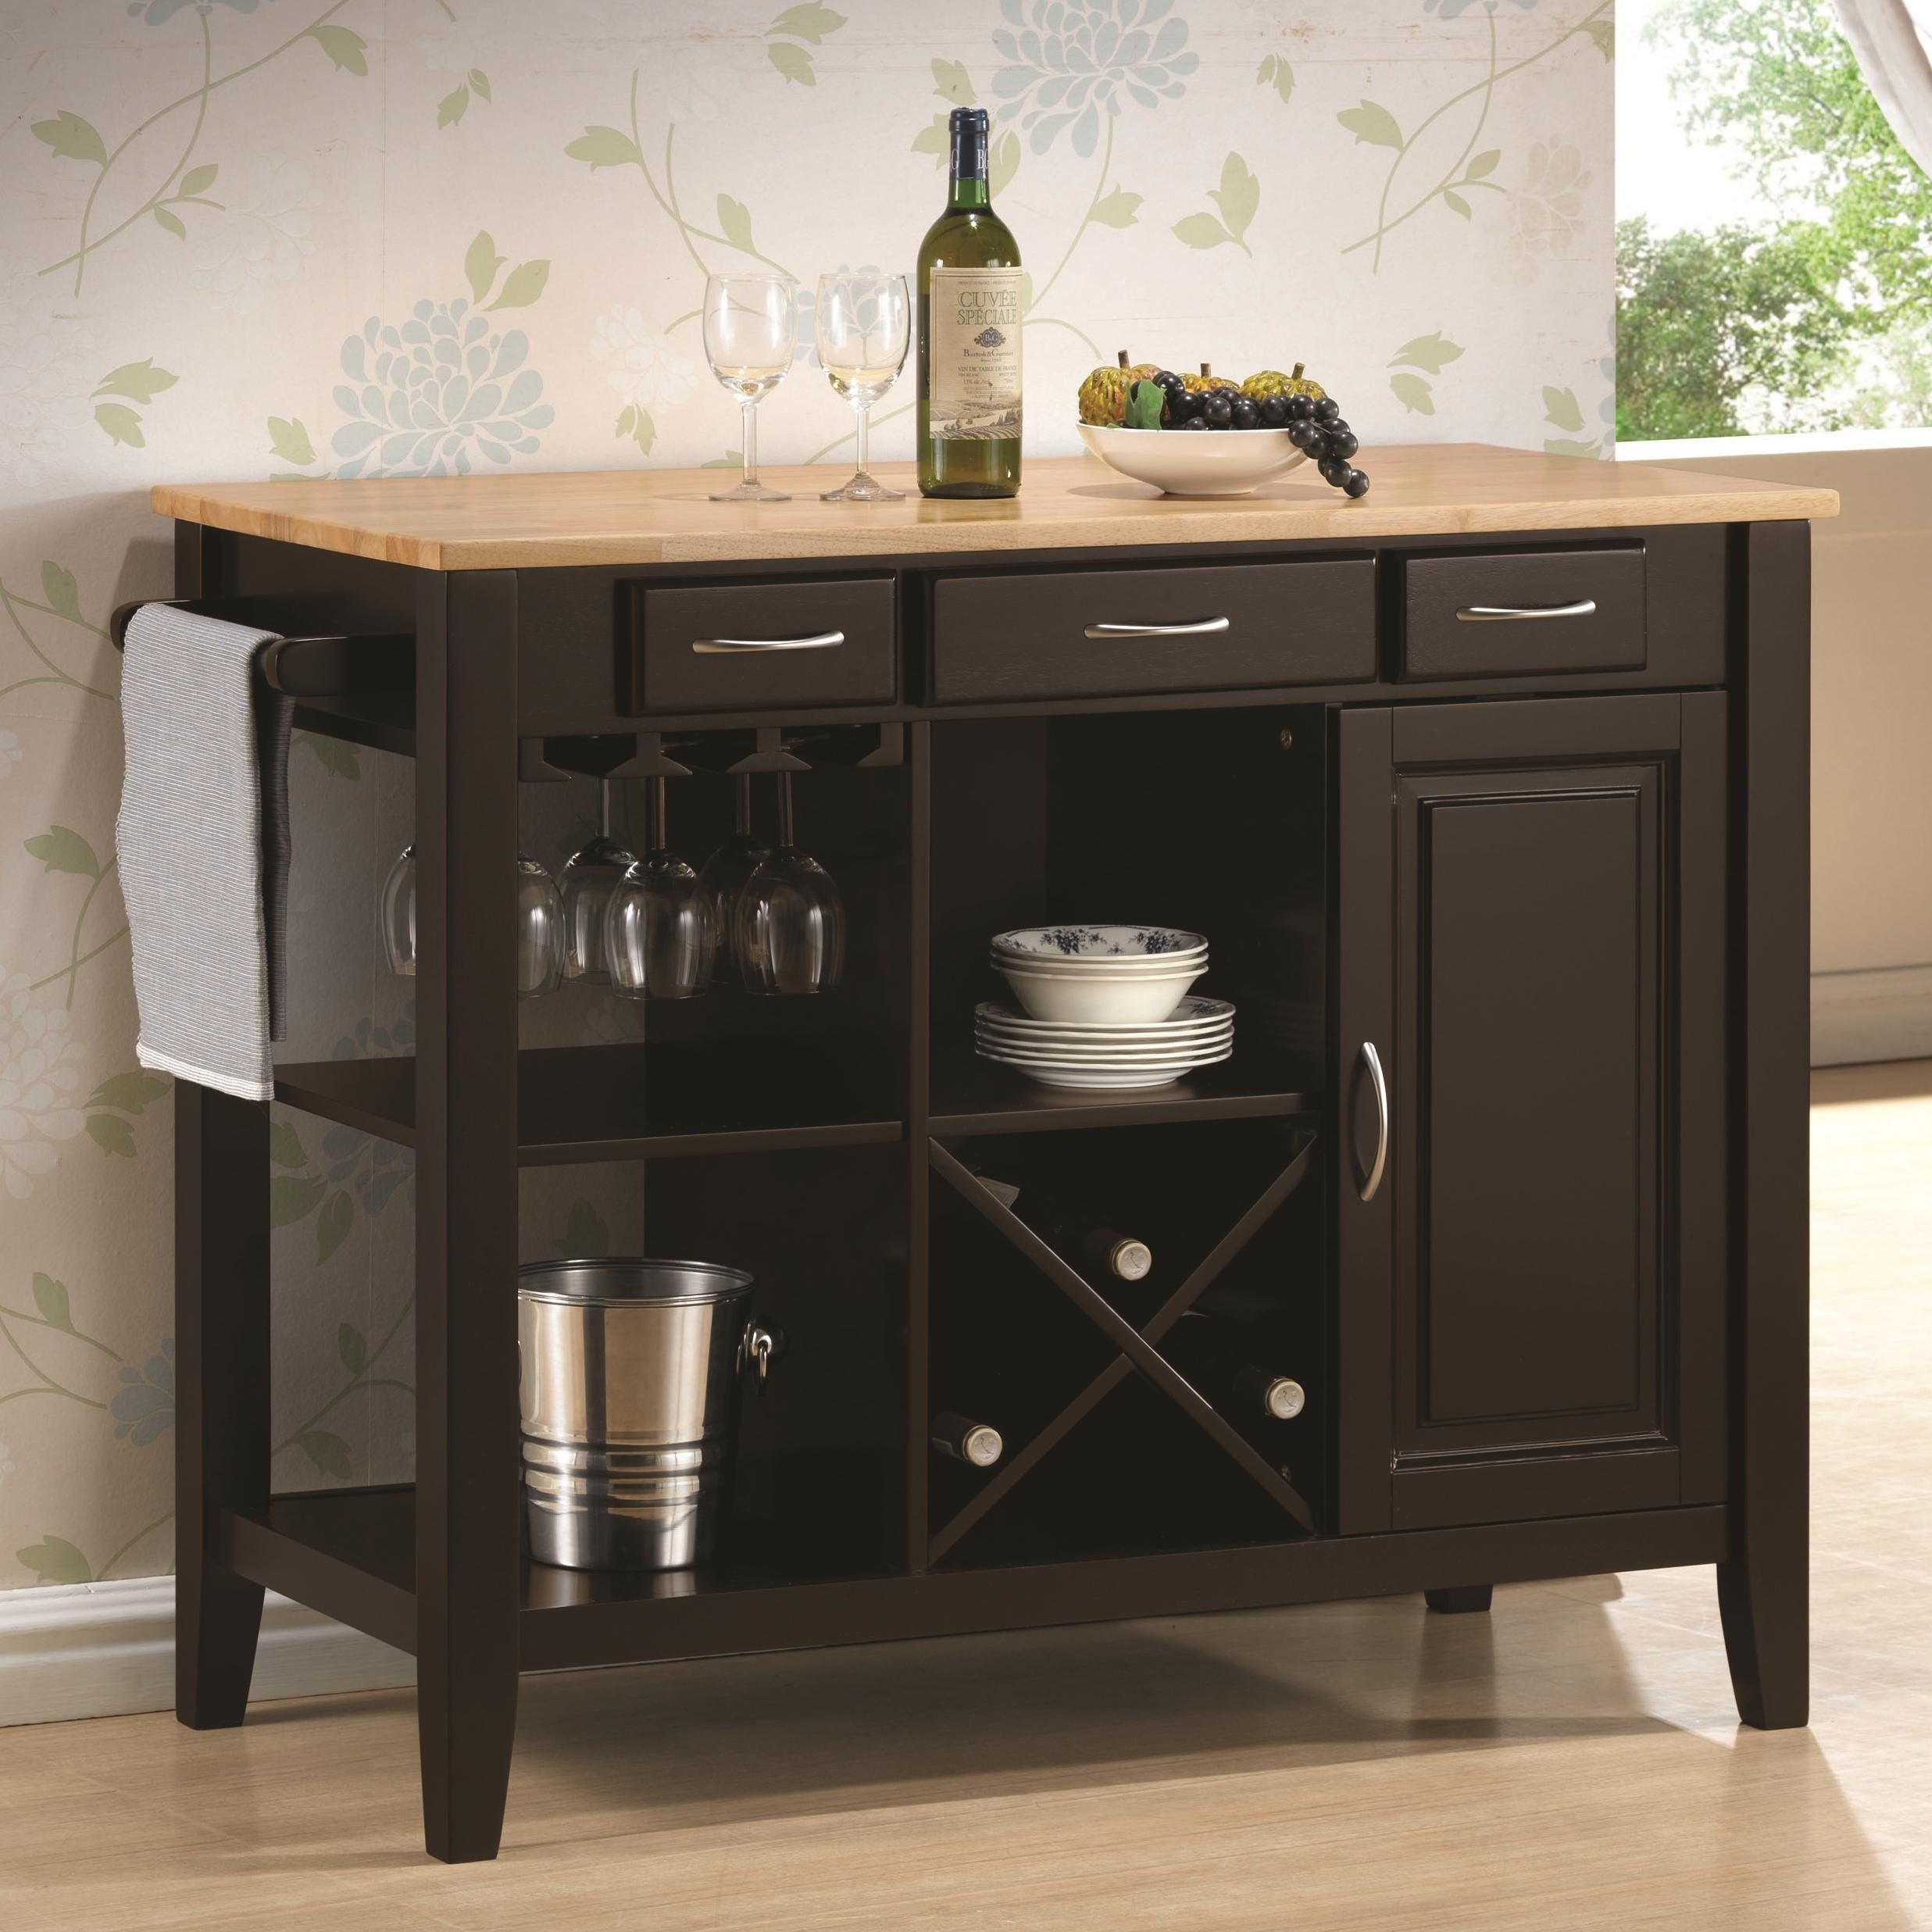 Kitchen Island with Solid Wood Butcher Block Surface and S